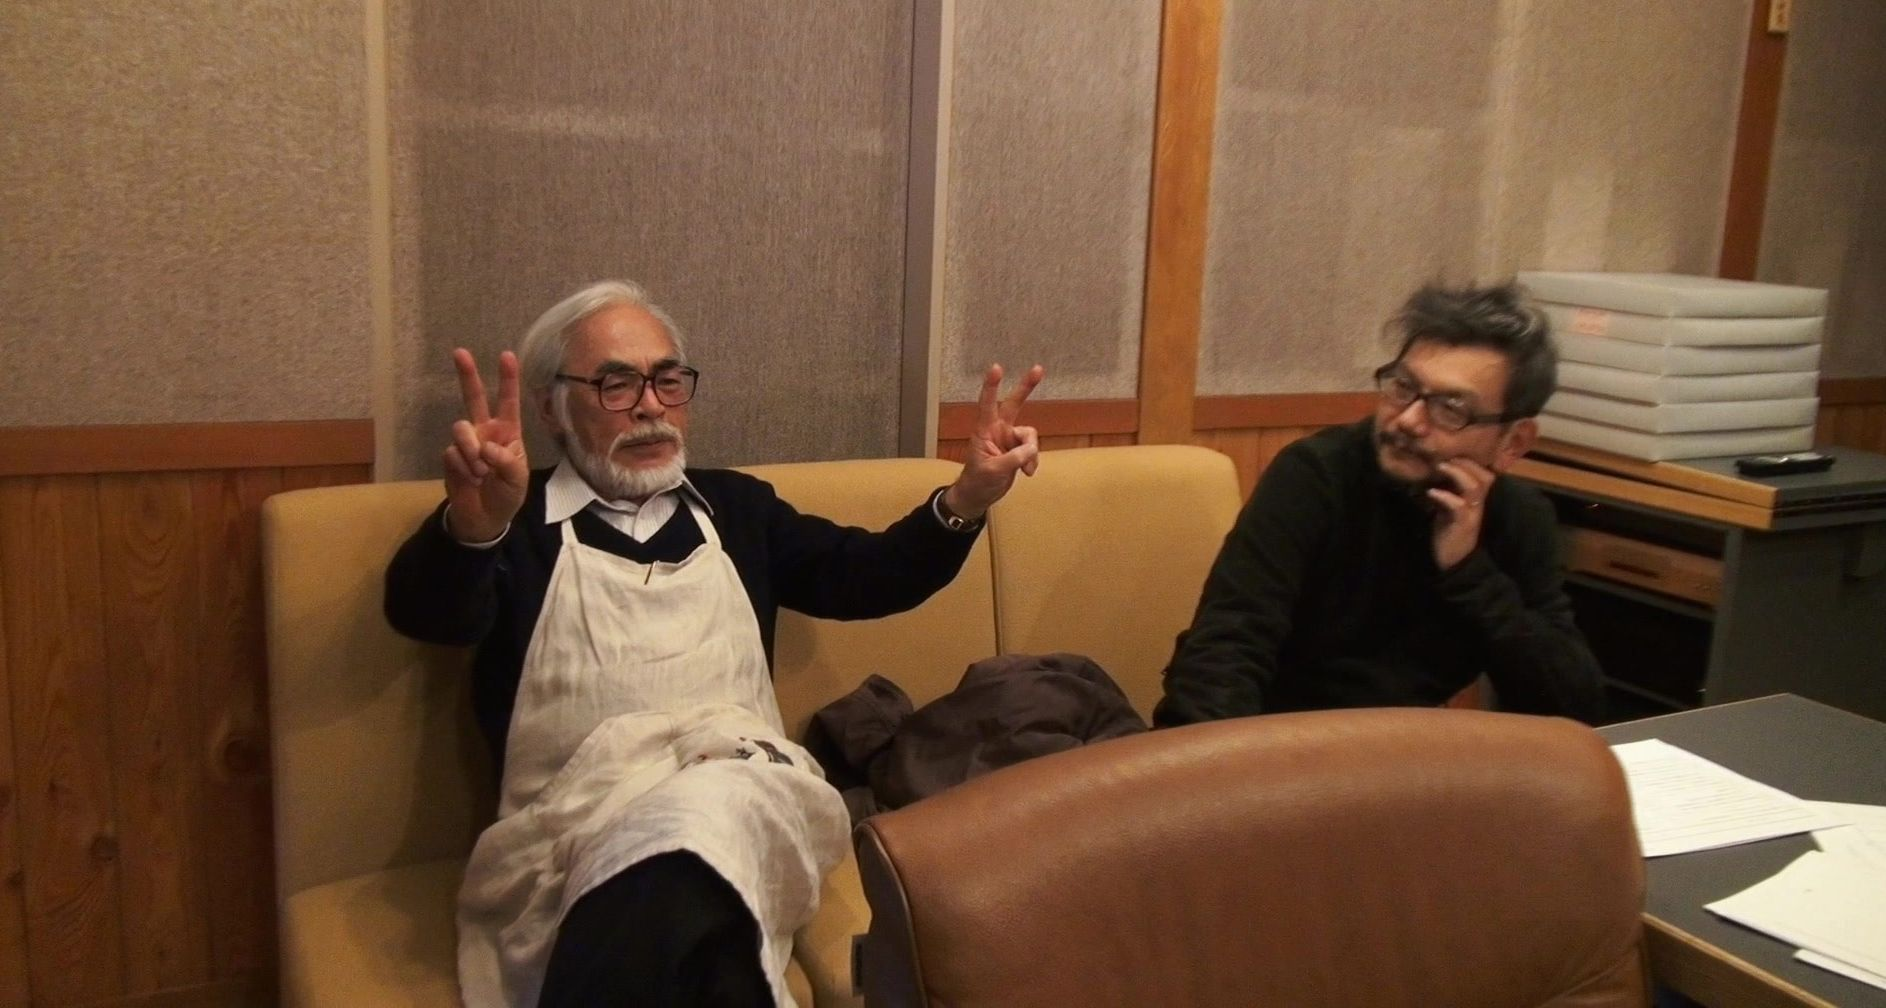 Hayao Miyazaki peace in documentary The Kingdom of Dreams an